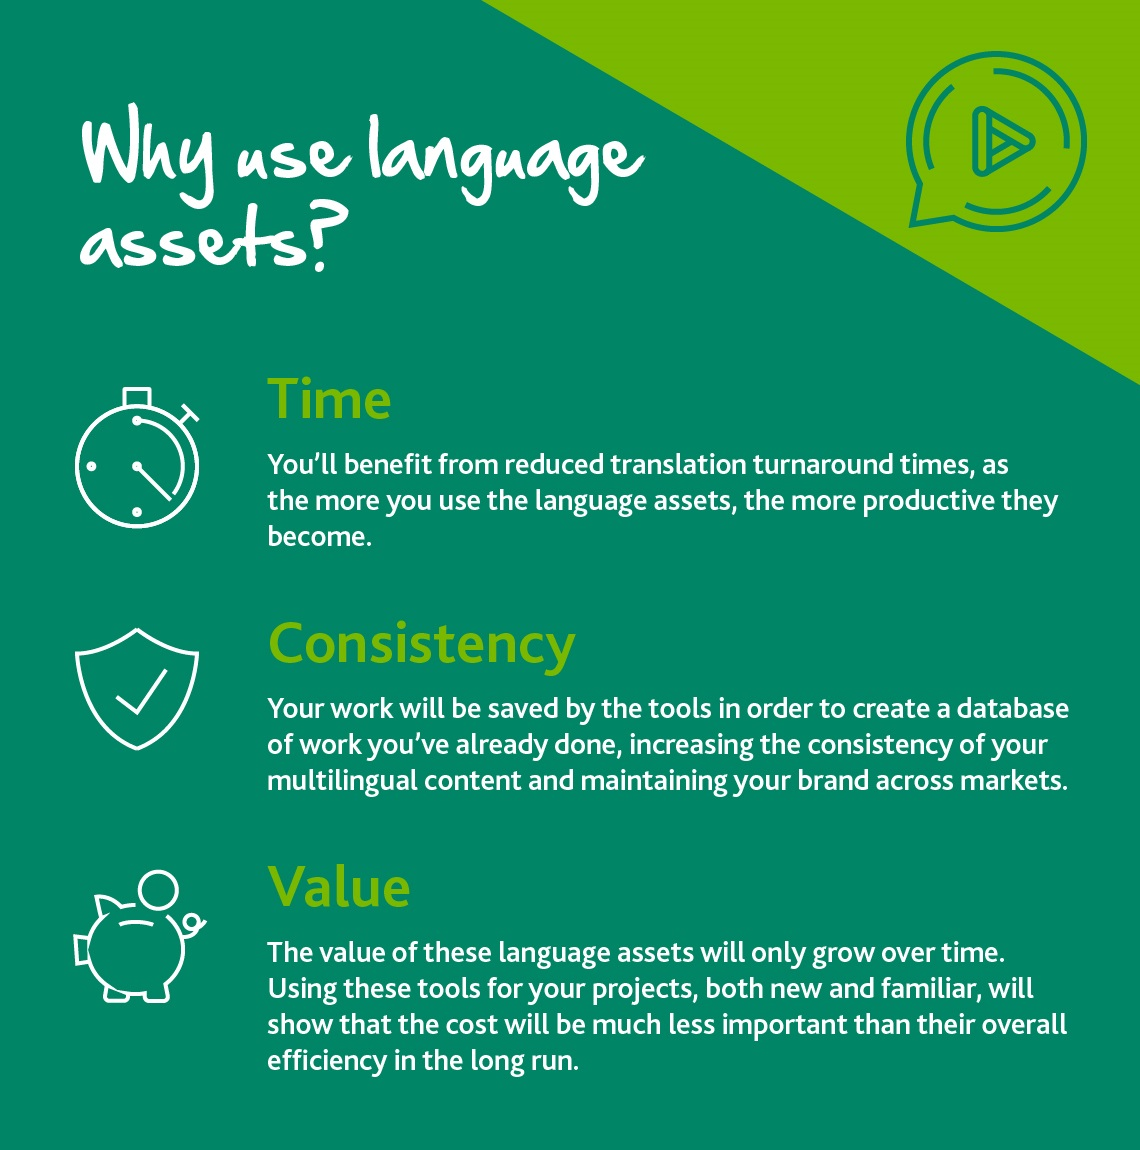 Why use language assets